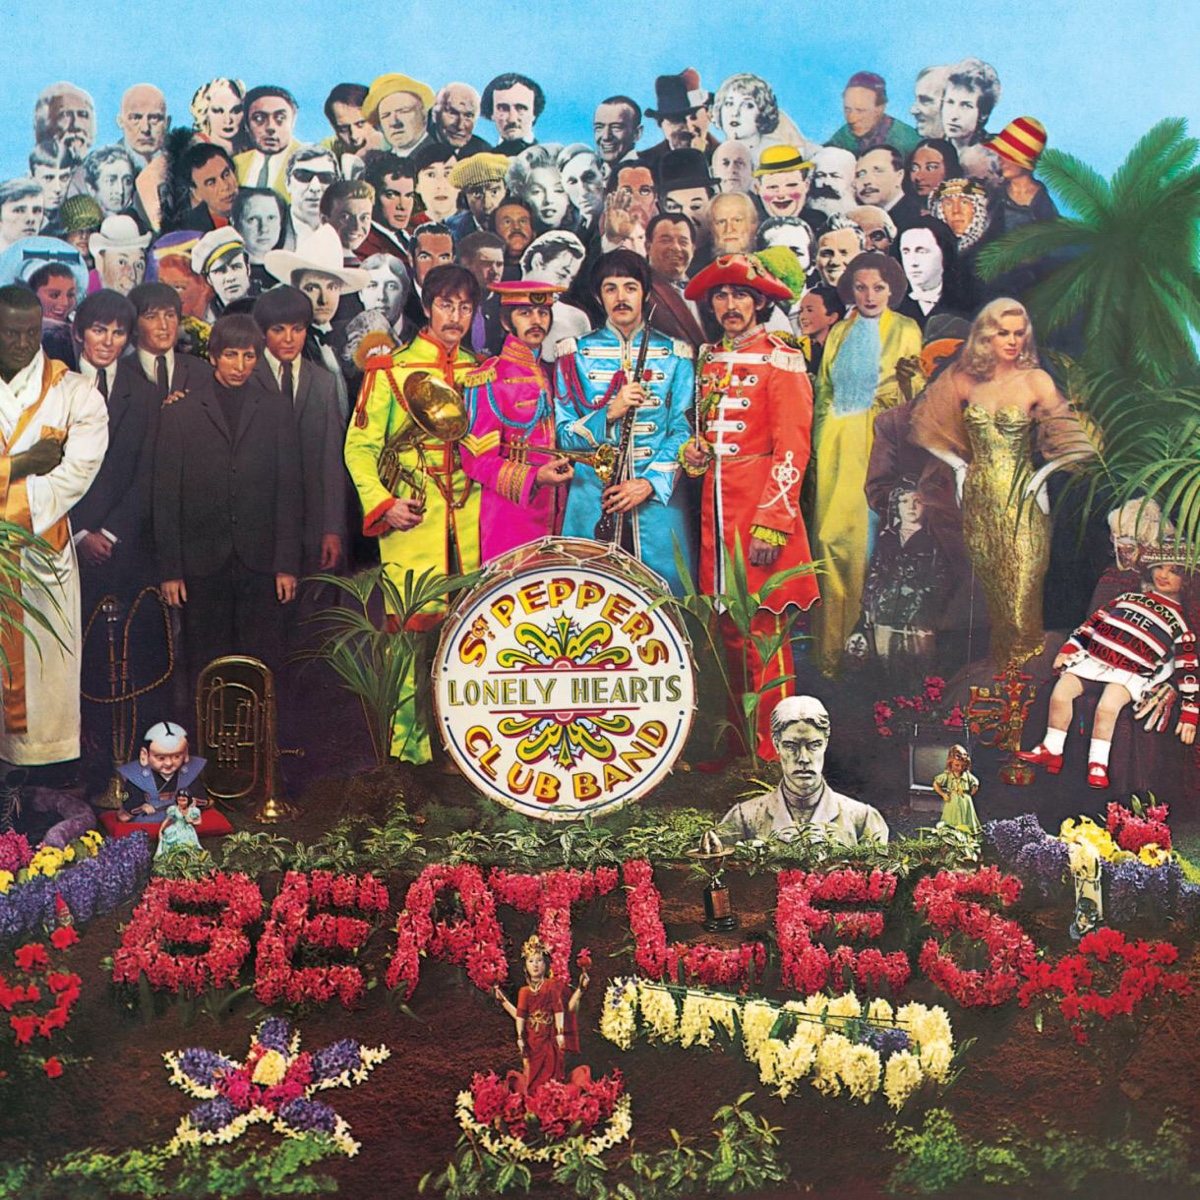 Sgt. Pepper's Lonely Hearts Club Band cover.